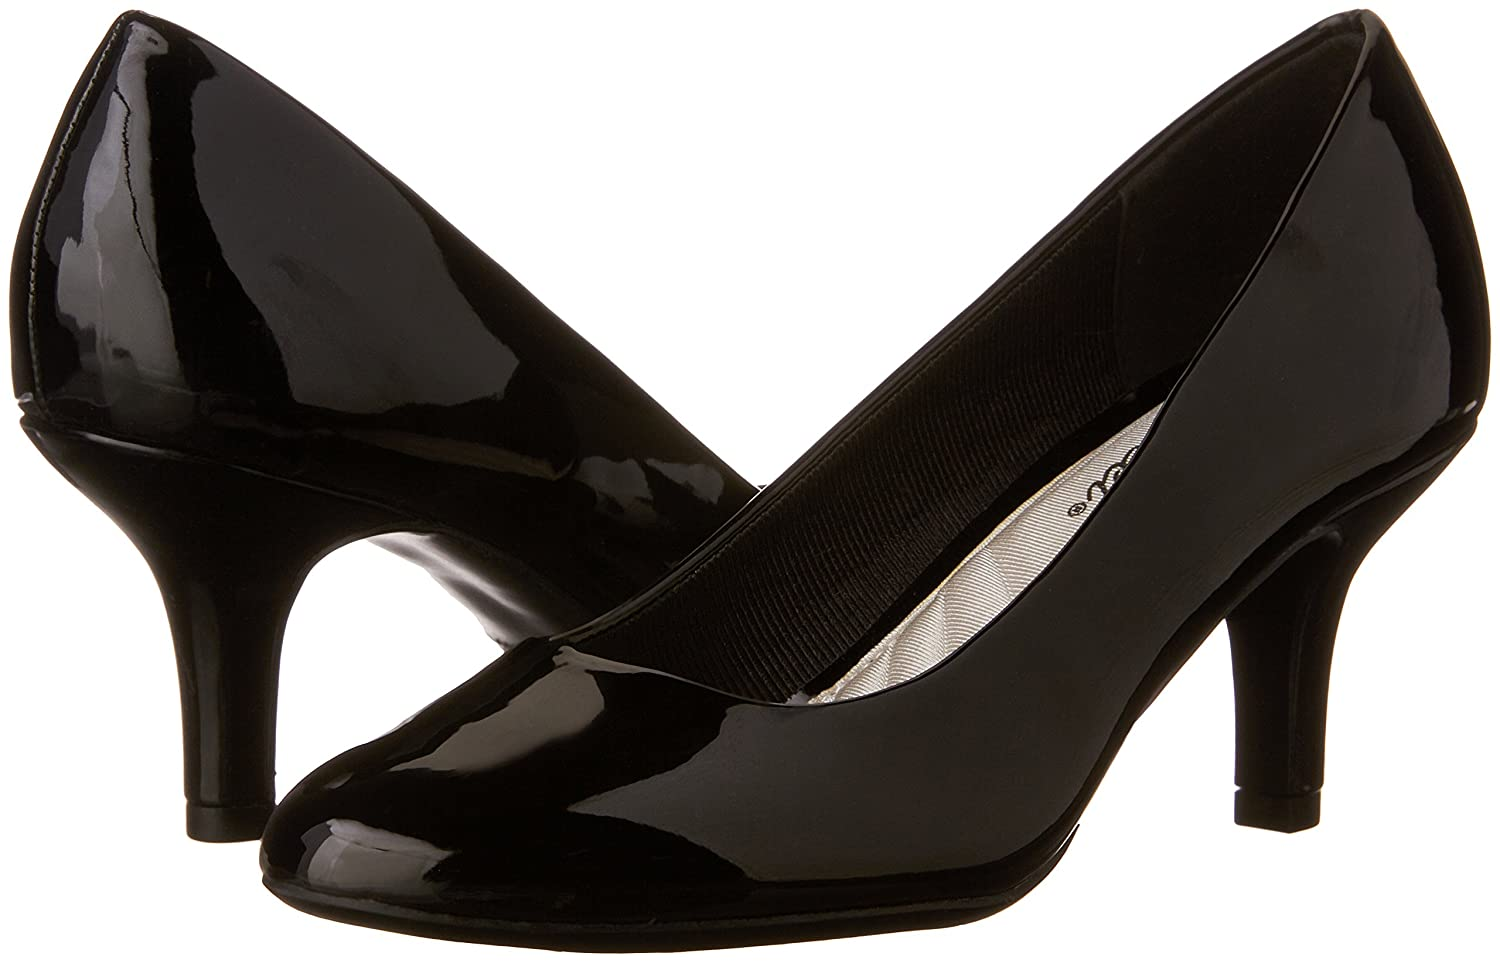 Easy Street Women's Passion Dress Pump B00F2K21E6 9.5 W US|Black Patent